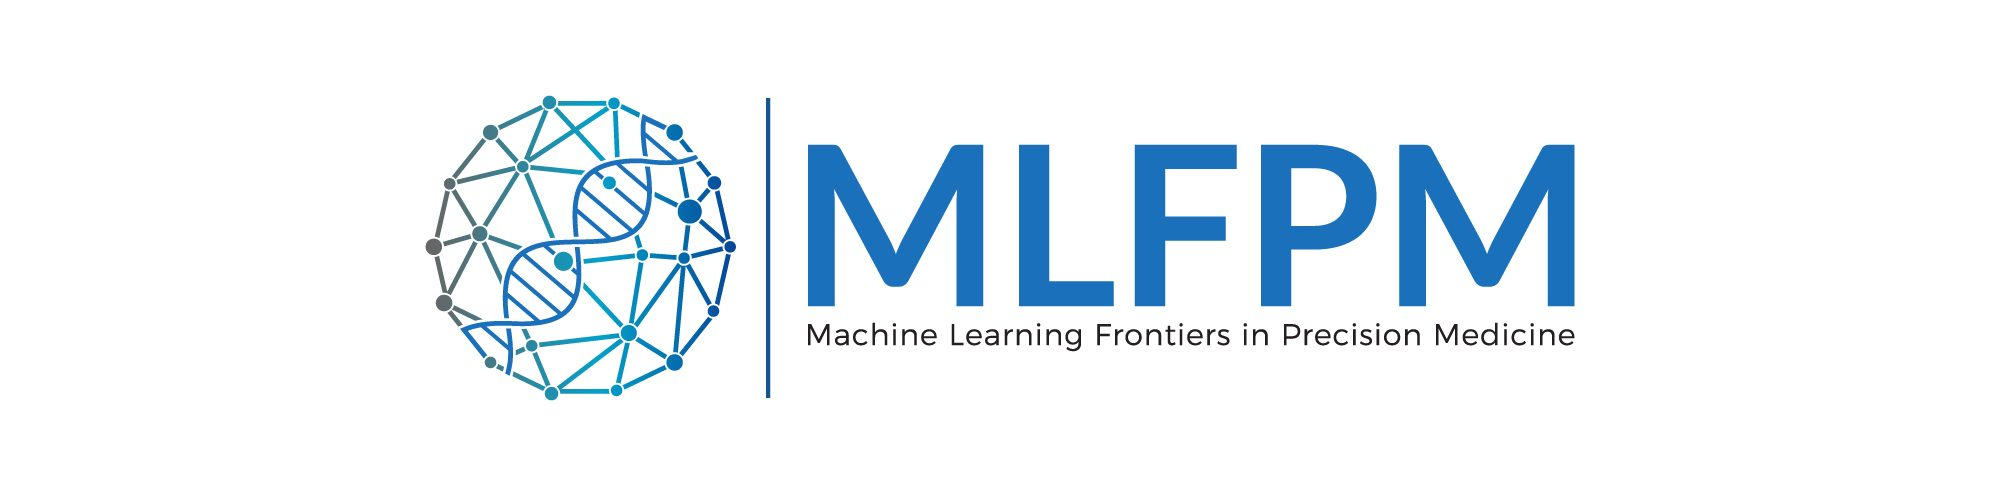 Projects and students – Machine Learning Frontiers in